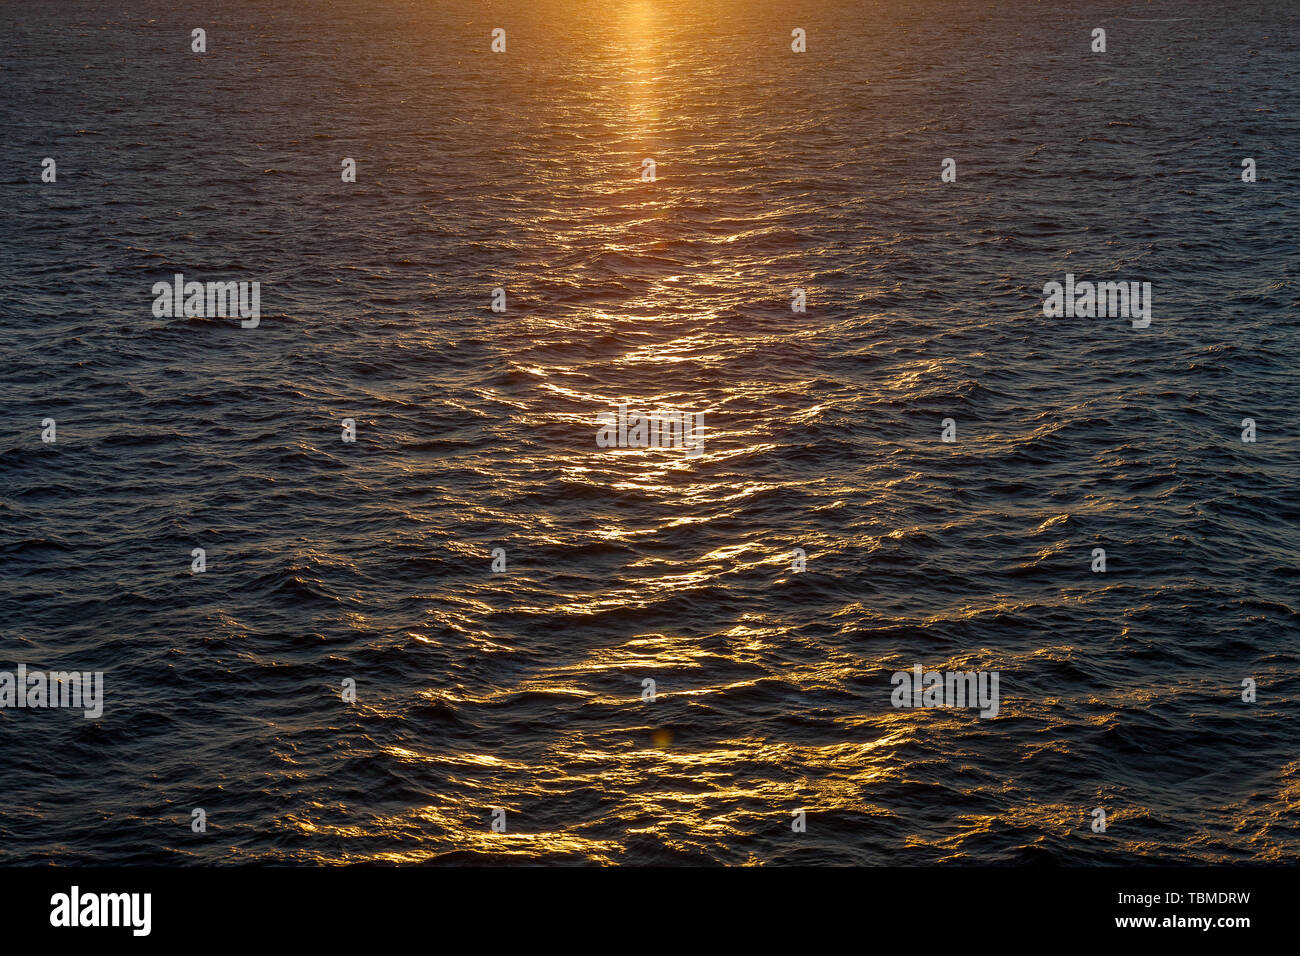 Beautiful reflections on the waves of the Mediterranean sea at sunset - Stock Image